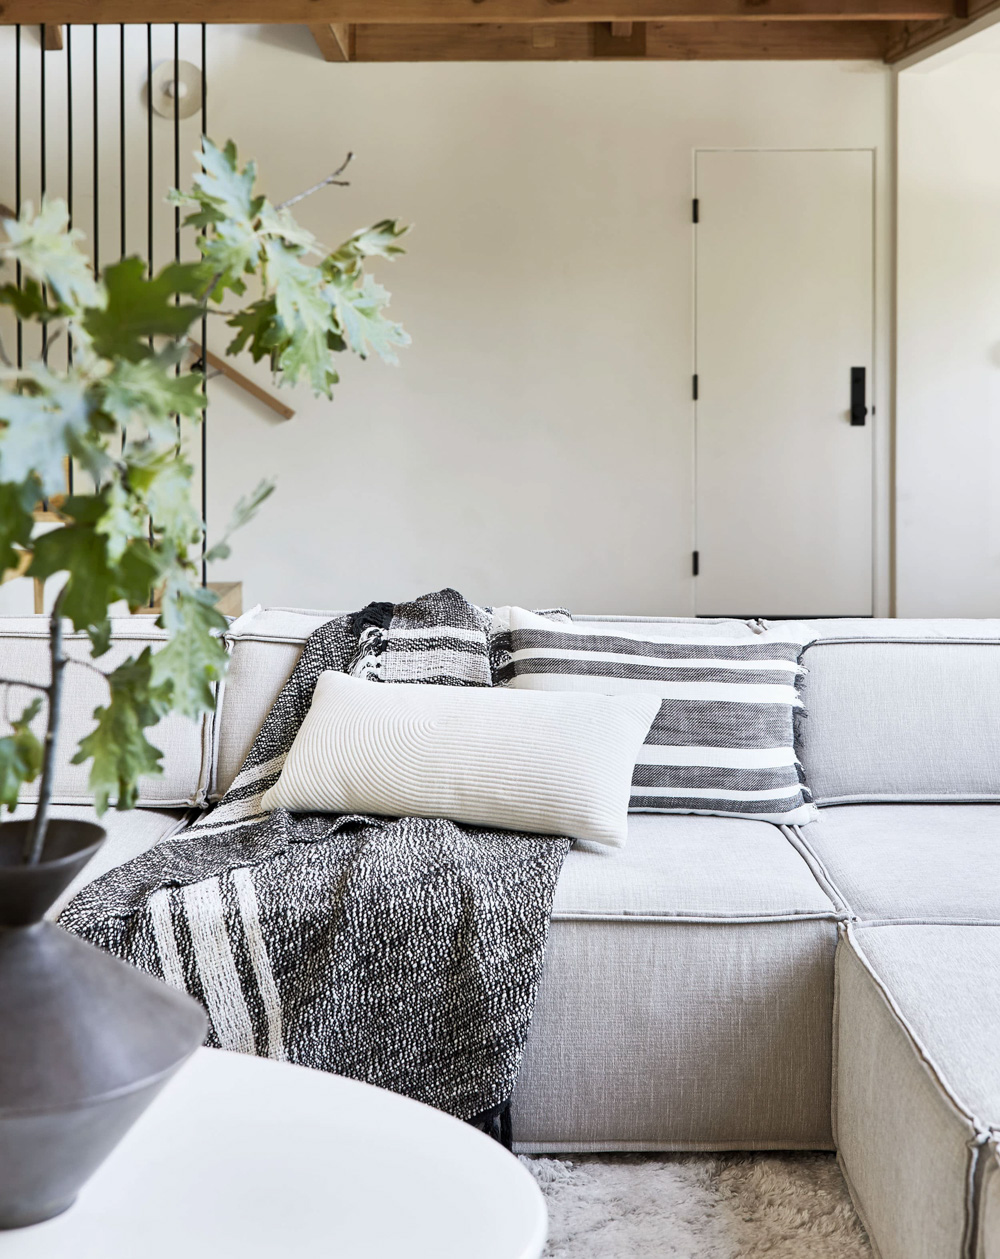 Cozy-textured-throw-and-pillows-68261